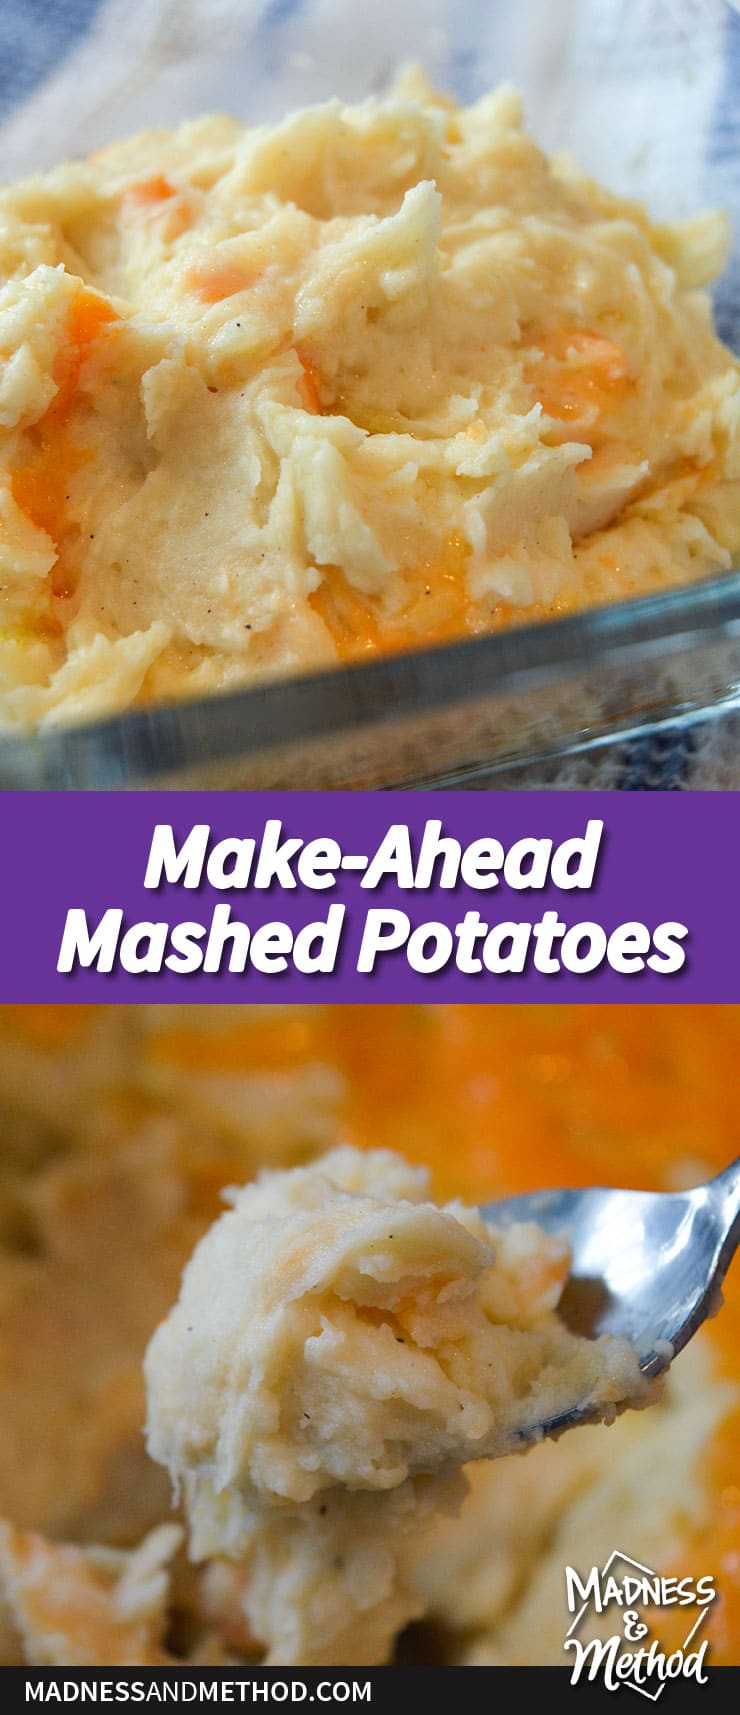 make-ahead mashed potatoes